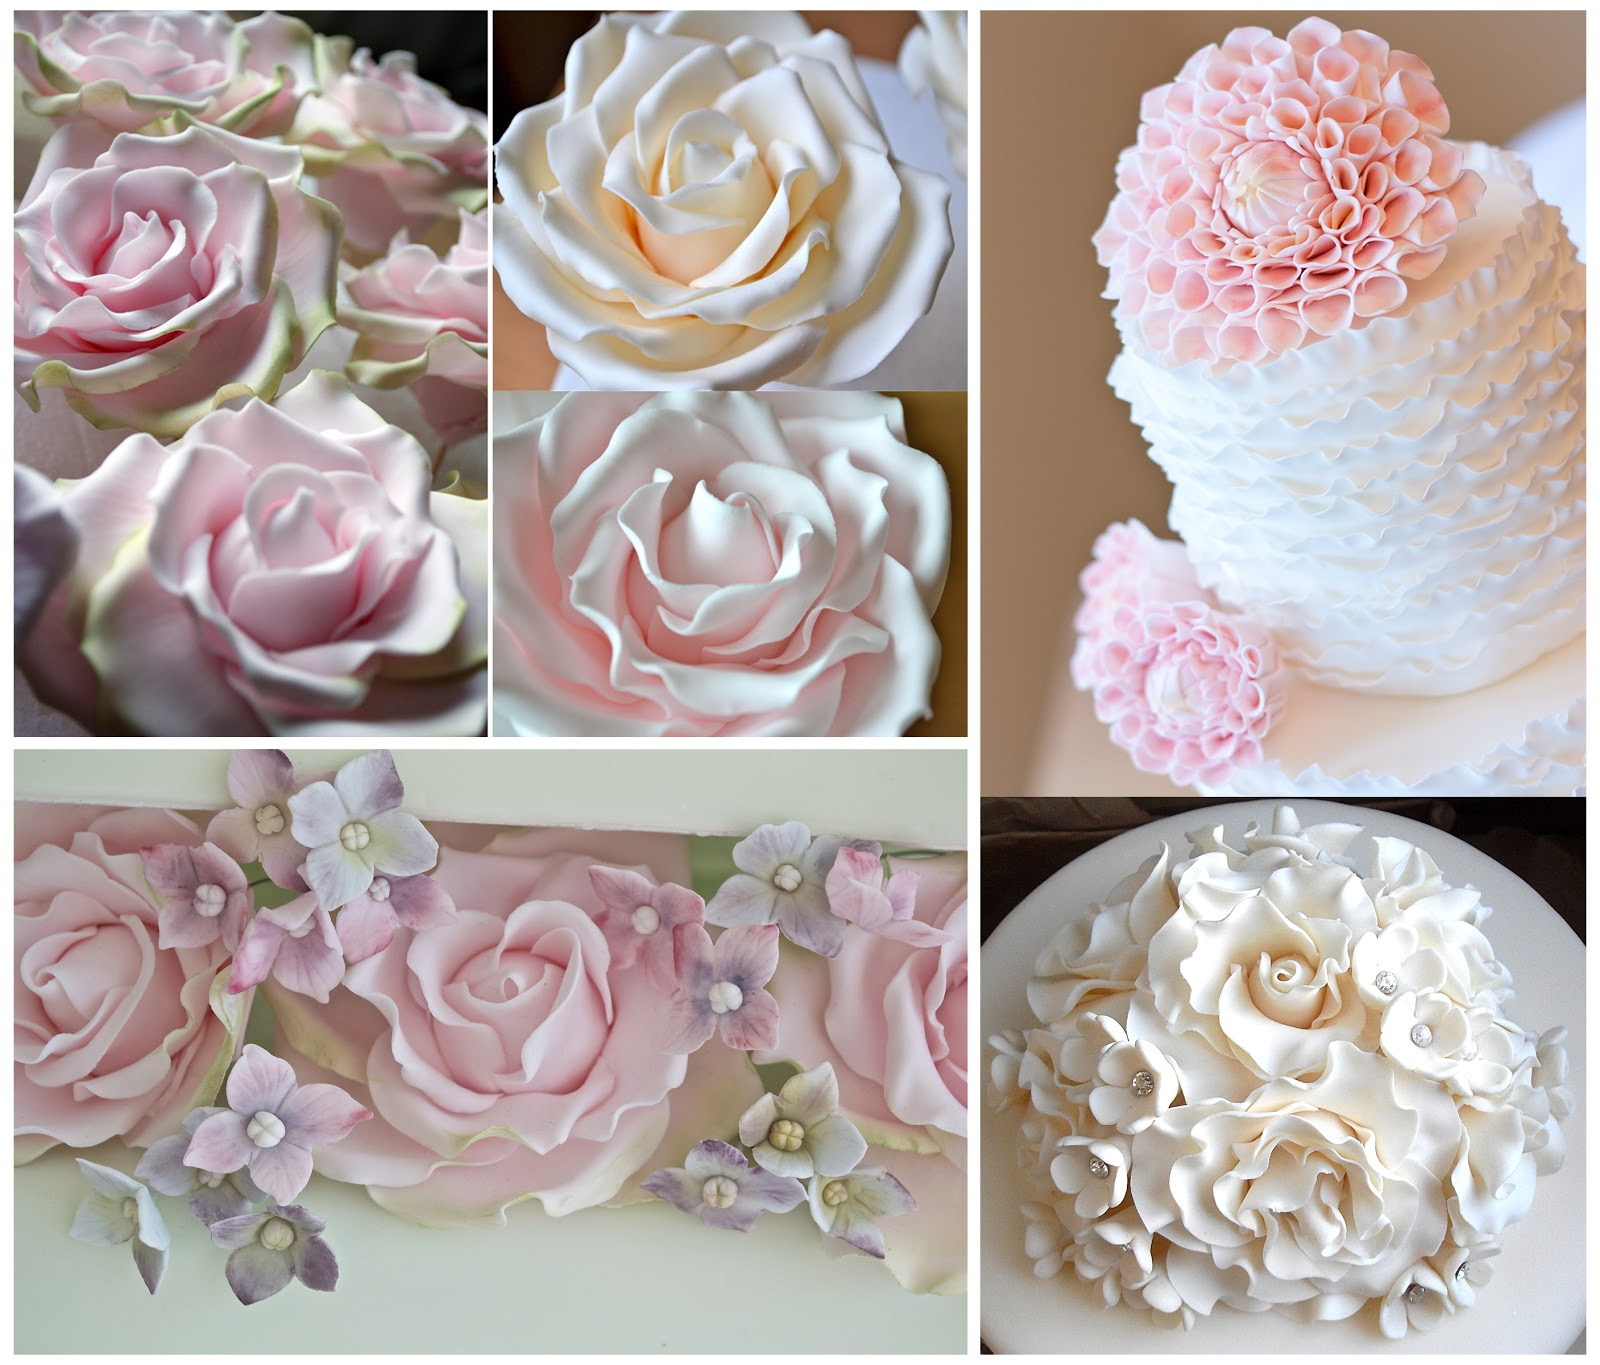 45 Wedding Cakes With Sugar Flowers That Look Stunningly: Sugar Flowers